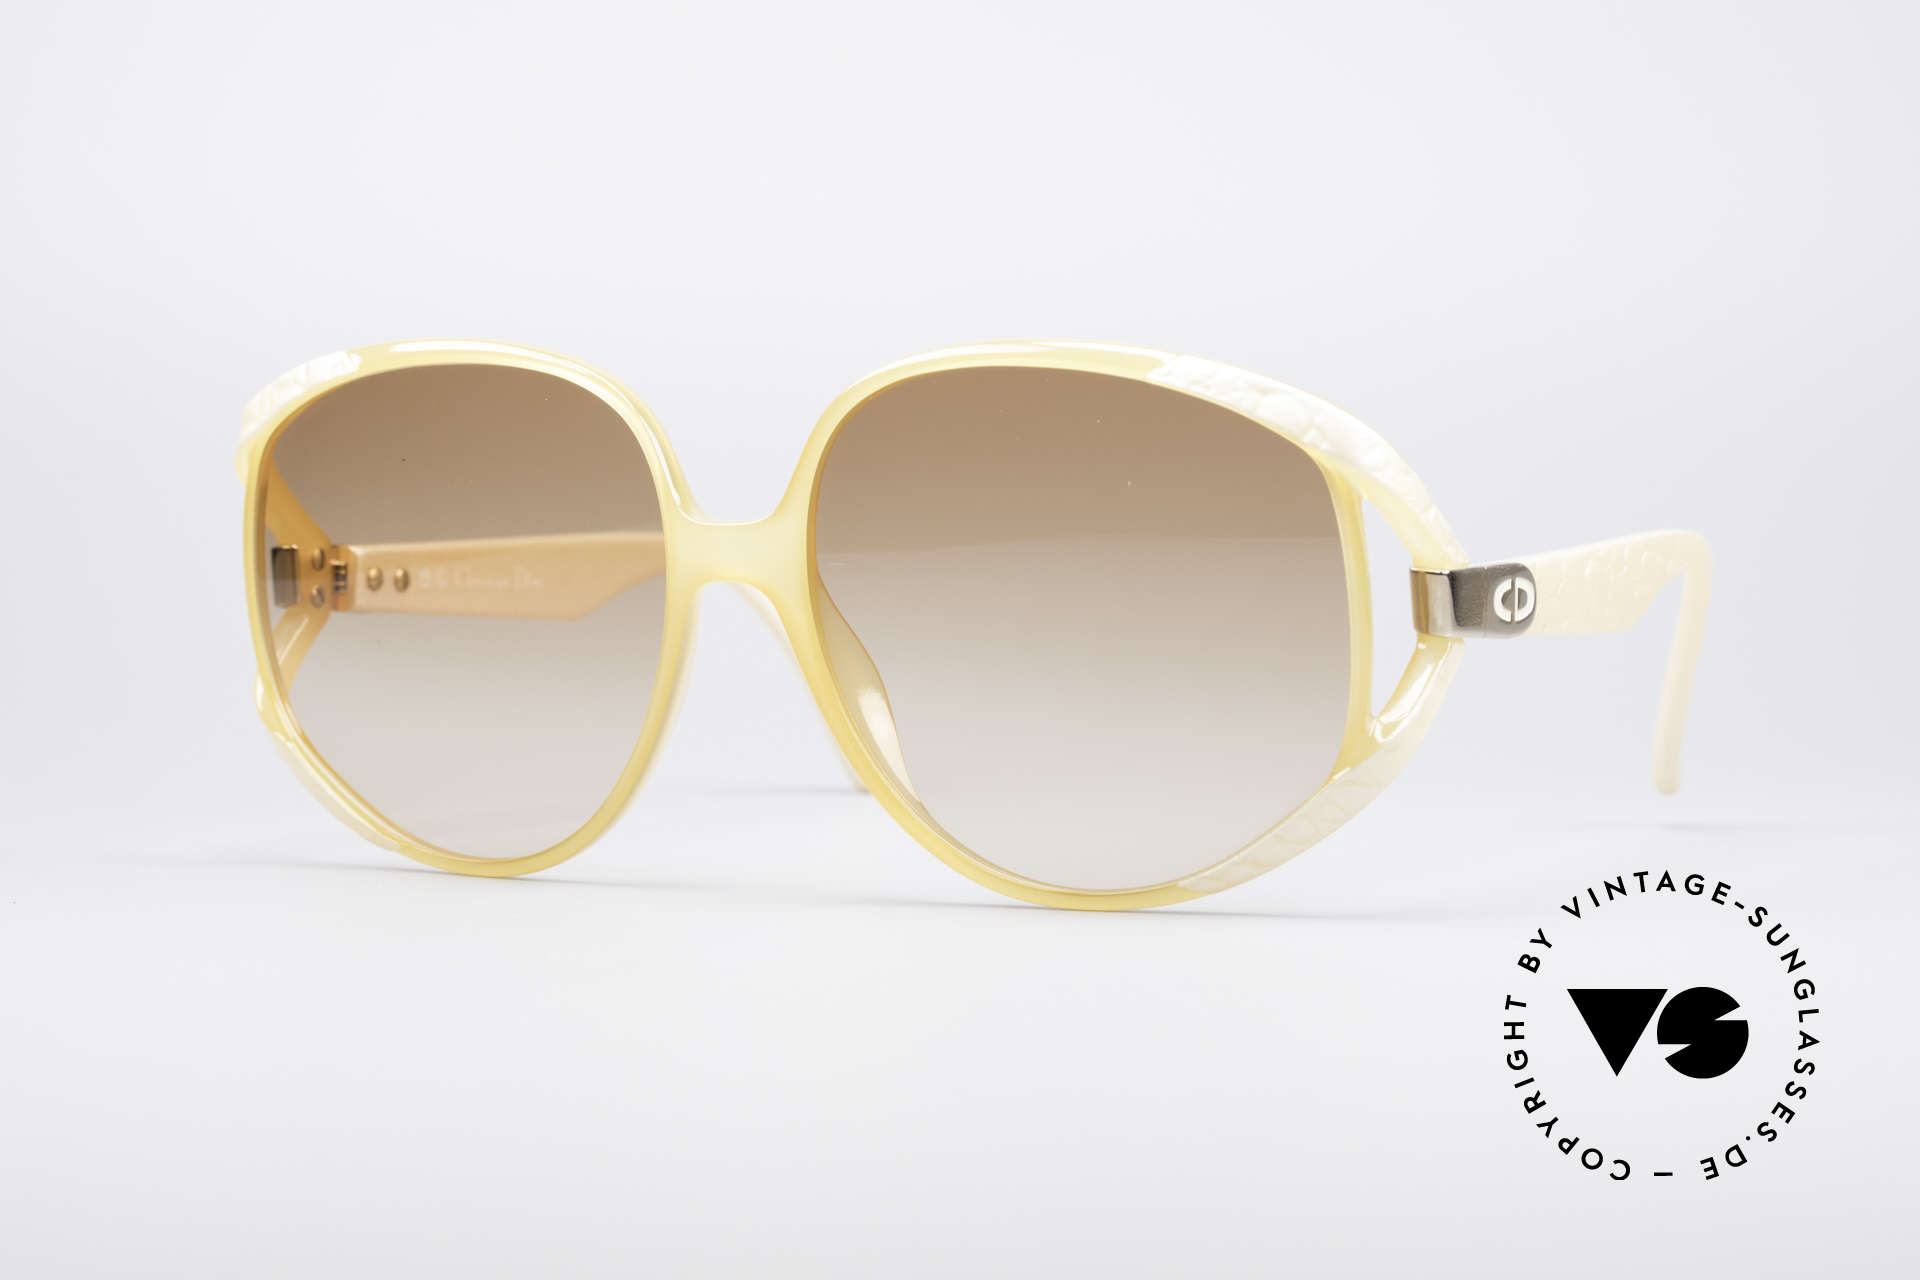 Christian Dior 2320 Rare 80's Ladies XL Sunglasses, gigantic XXL shades by Christian Dior from 1987, Made for Women